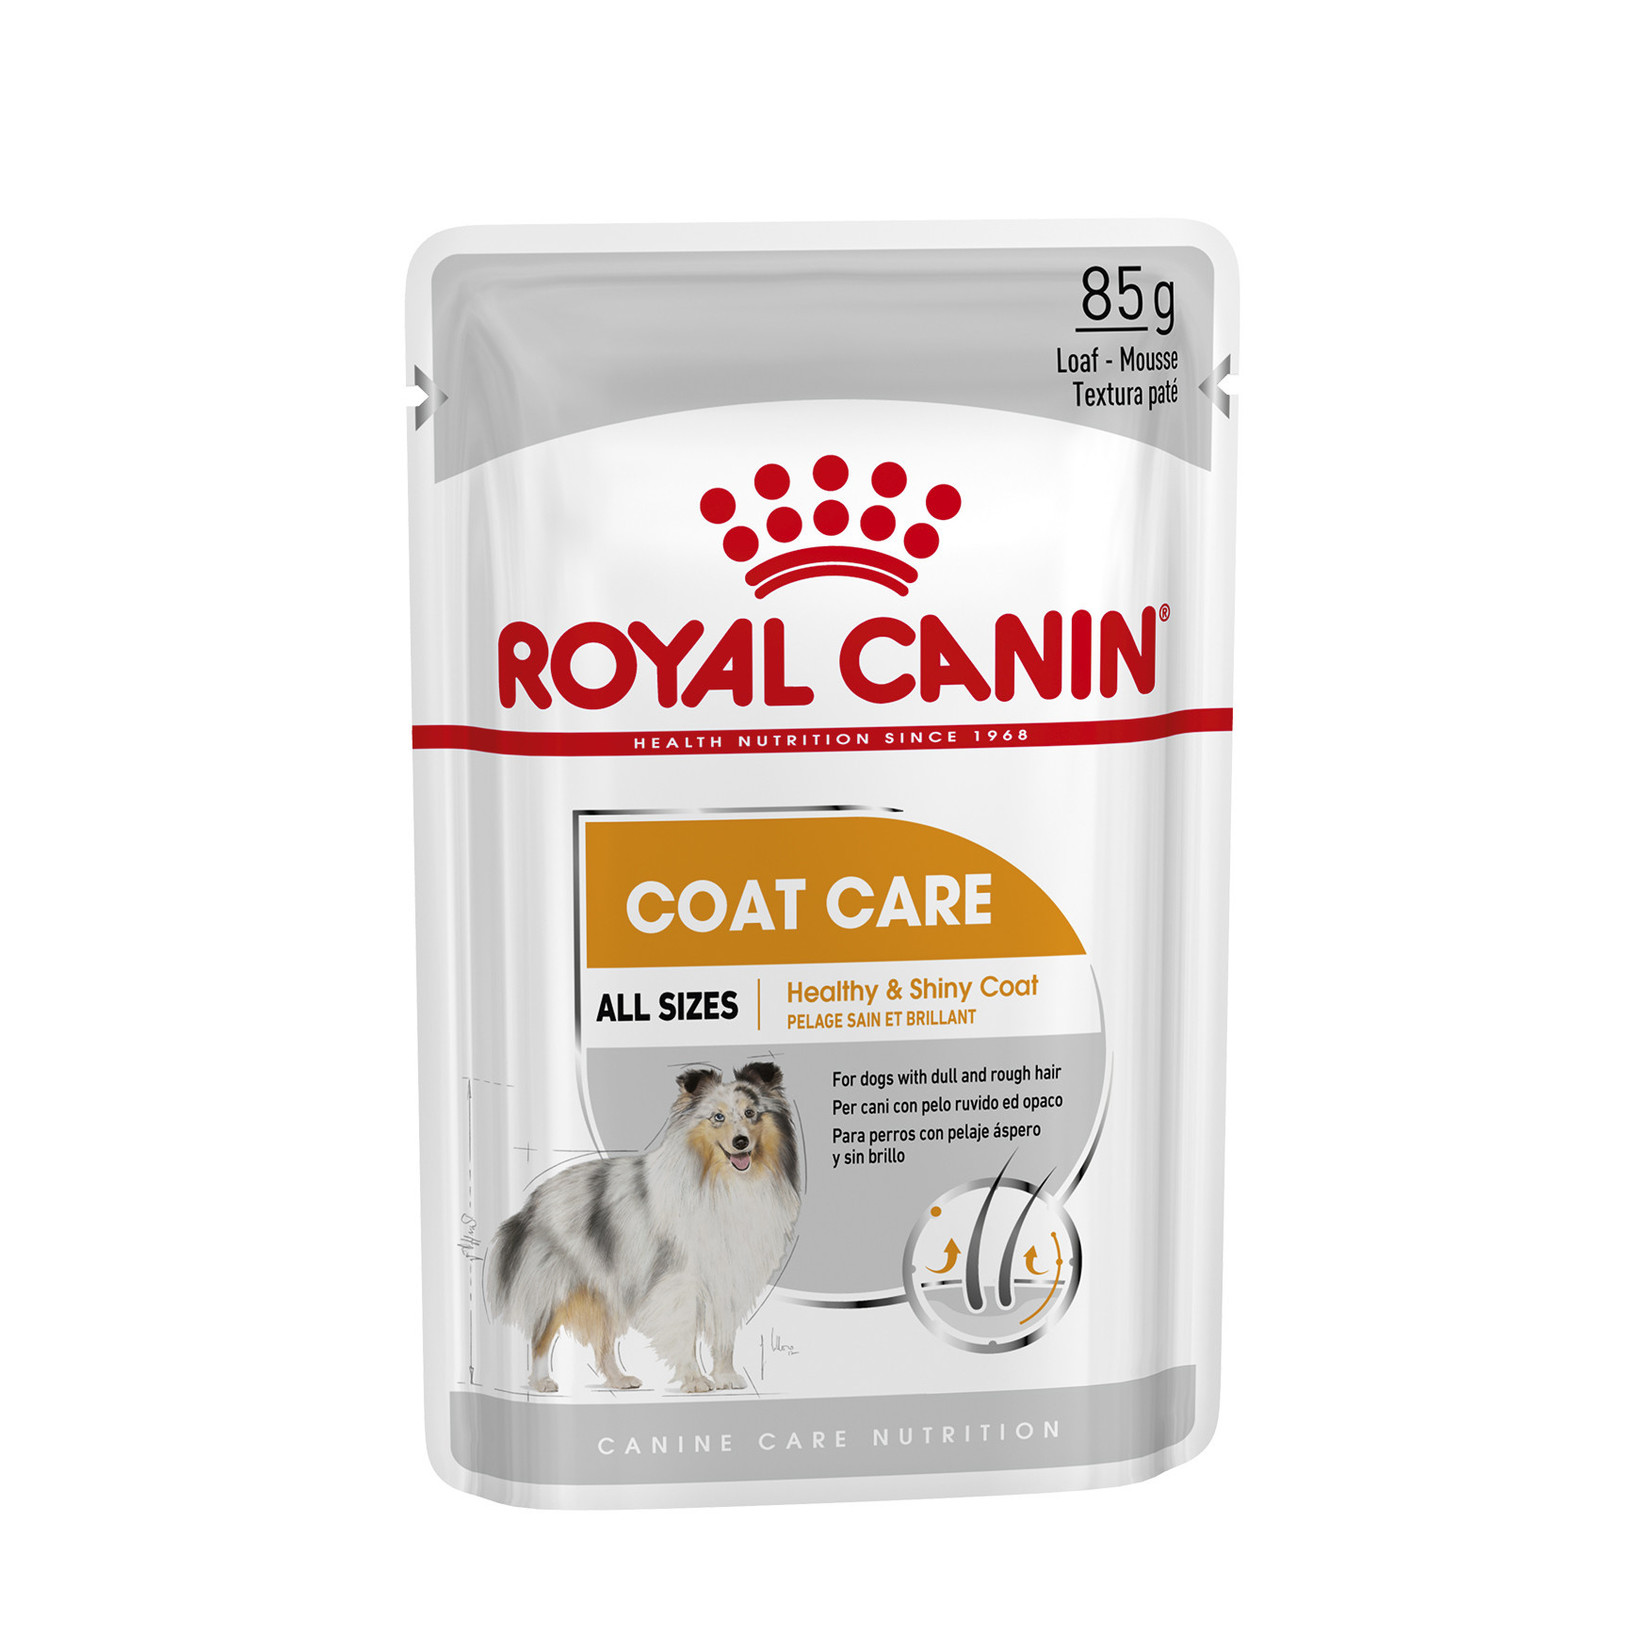 Royal Canin Coat Care Loaf Adult Dog Wet Food Pouch, 85g, box of 12